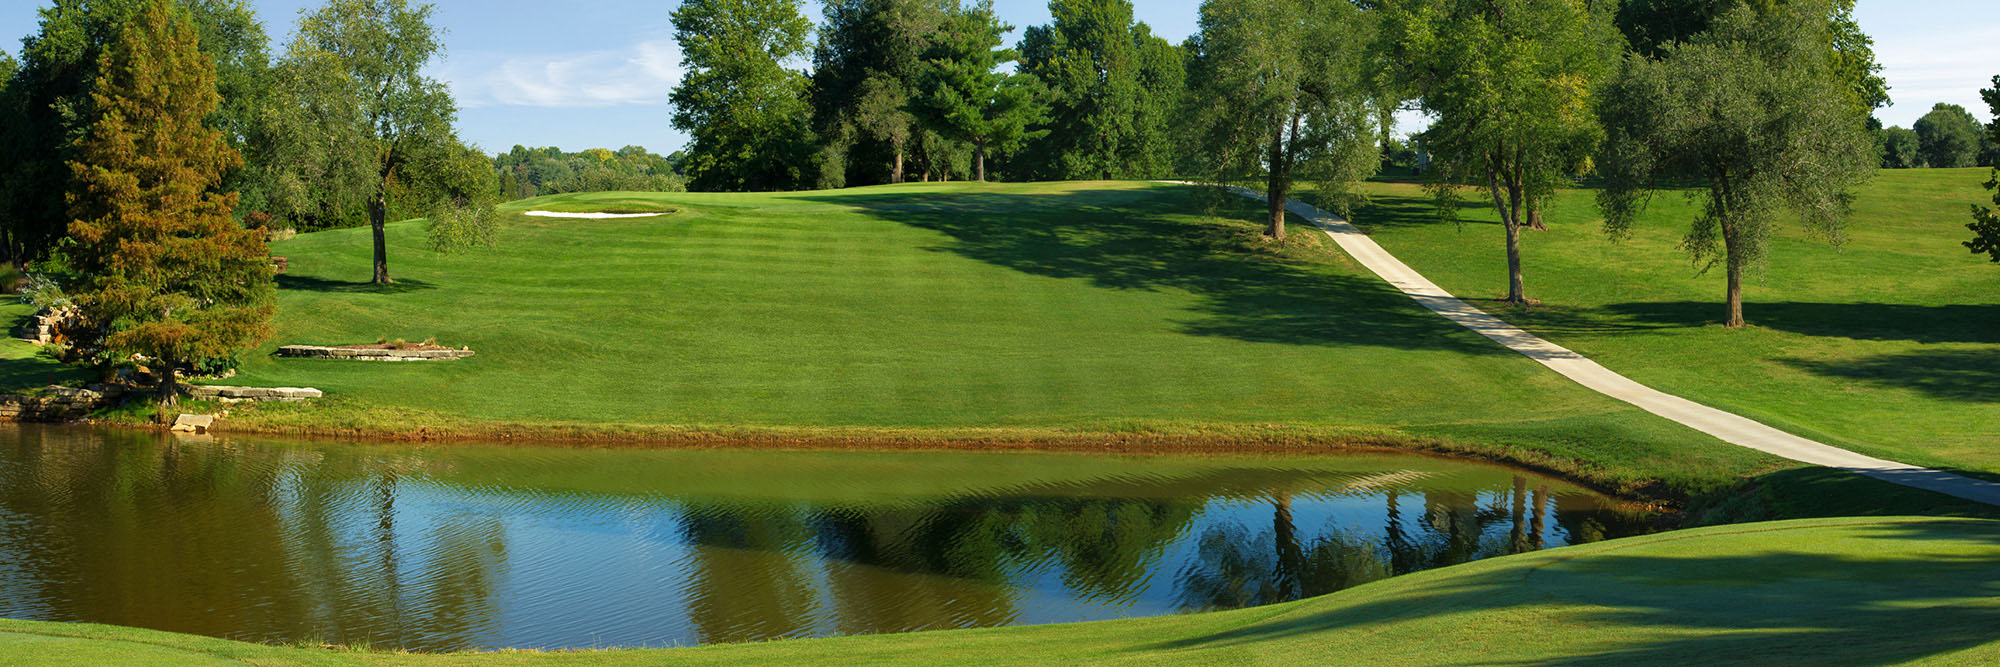 Golf Course Image - Twin Oaks Country Club No. 15 Right